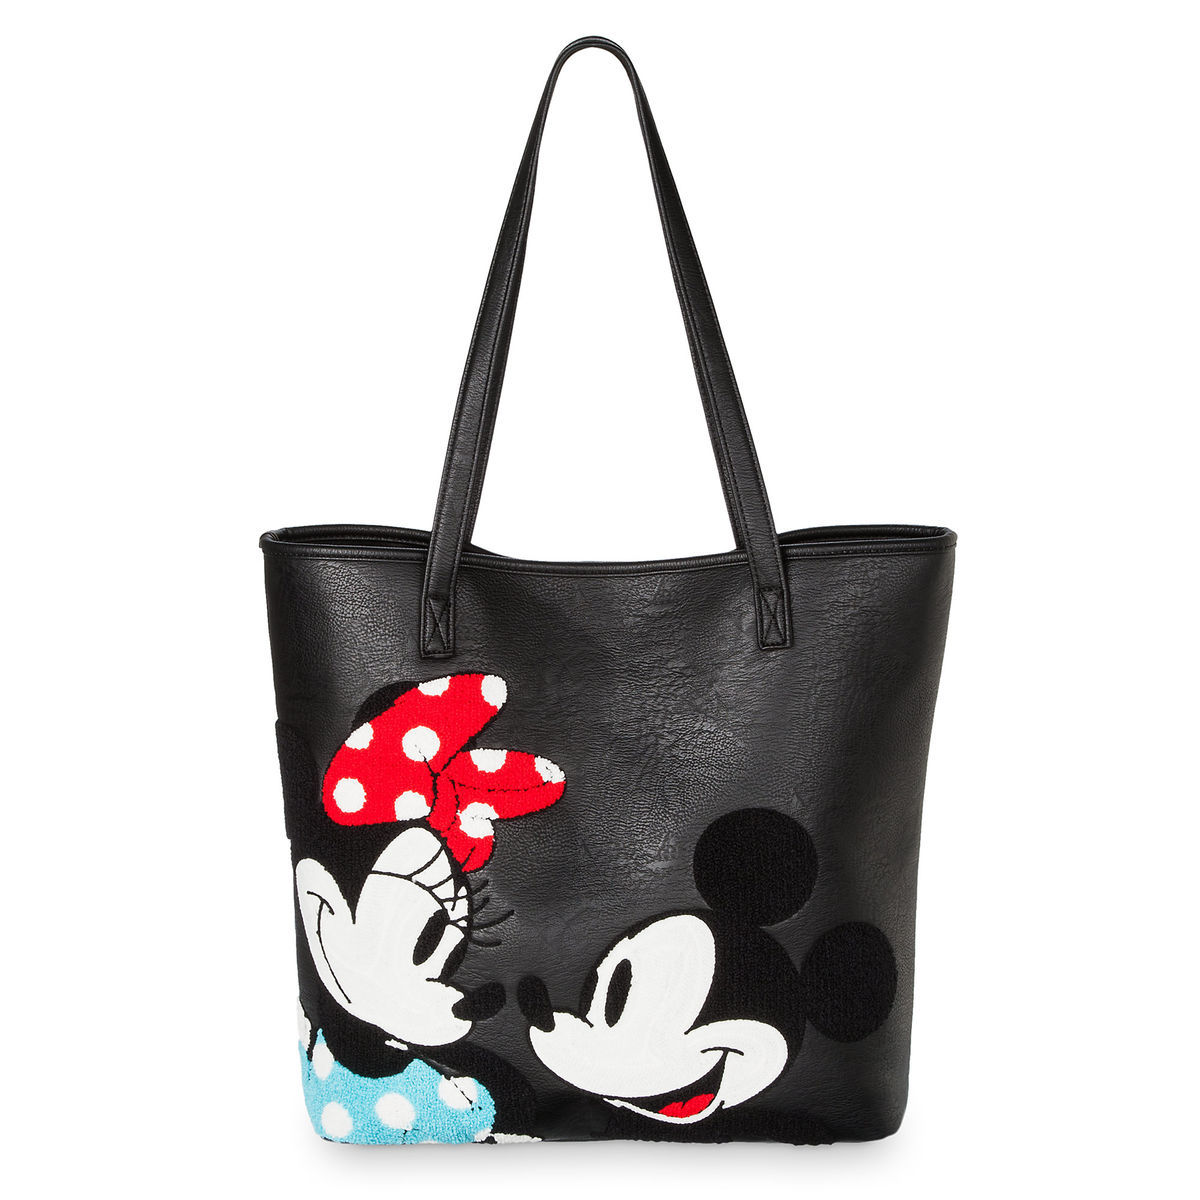 Product Image Of Mickey And Minnie Mouse Tote Bag By Loungefly 1